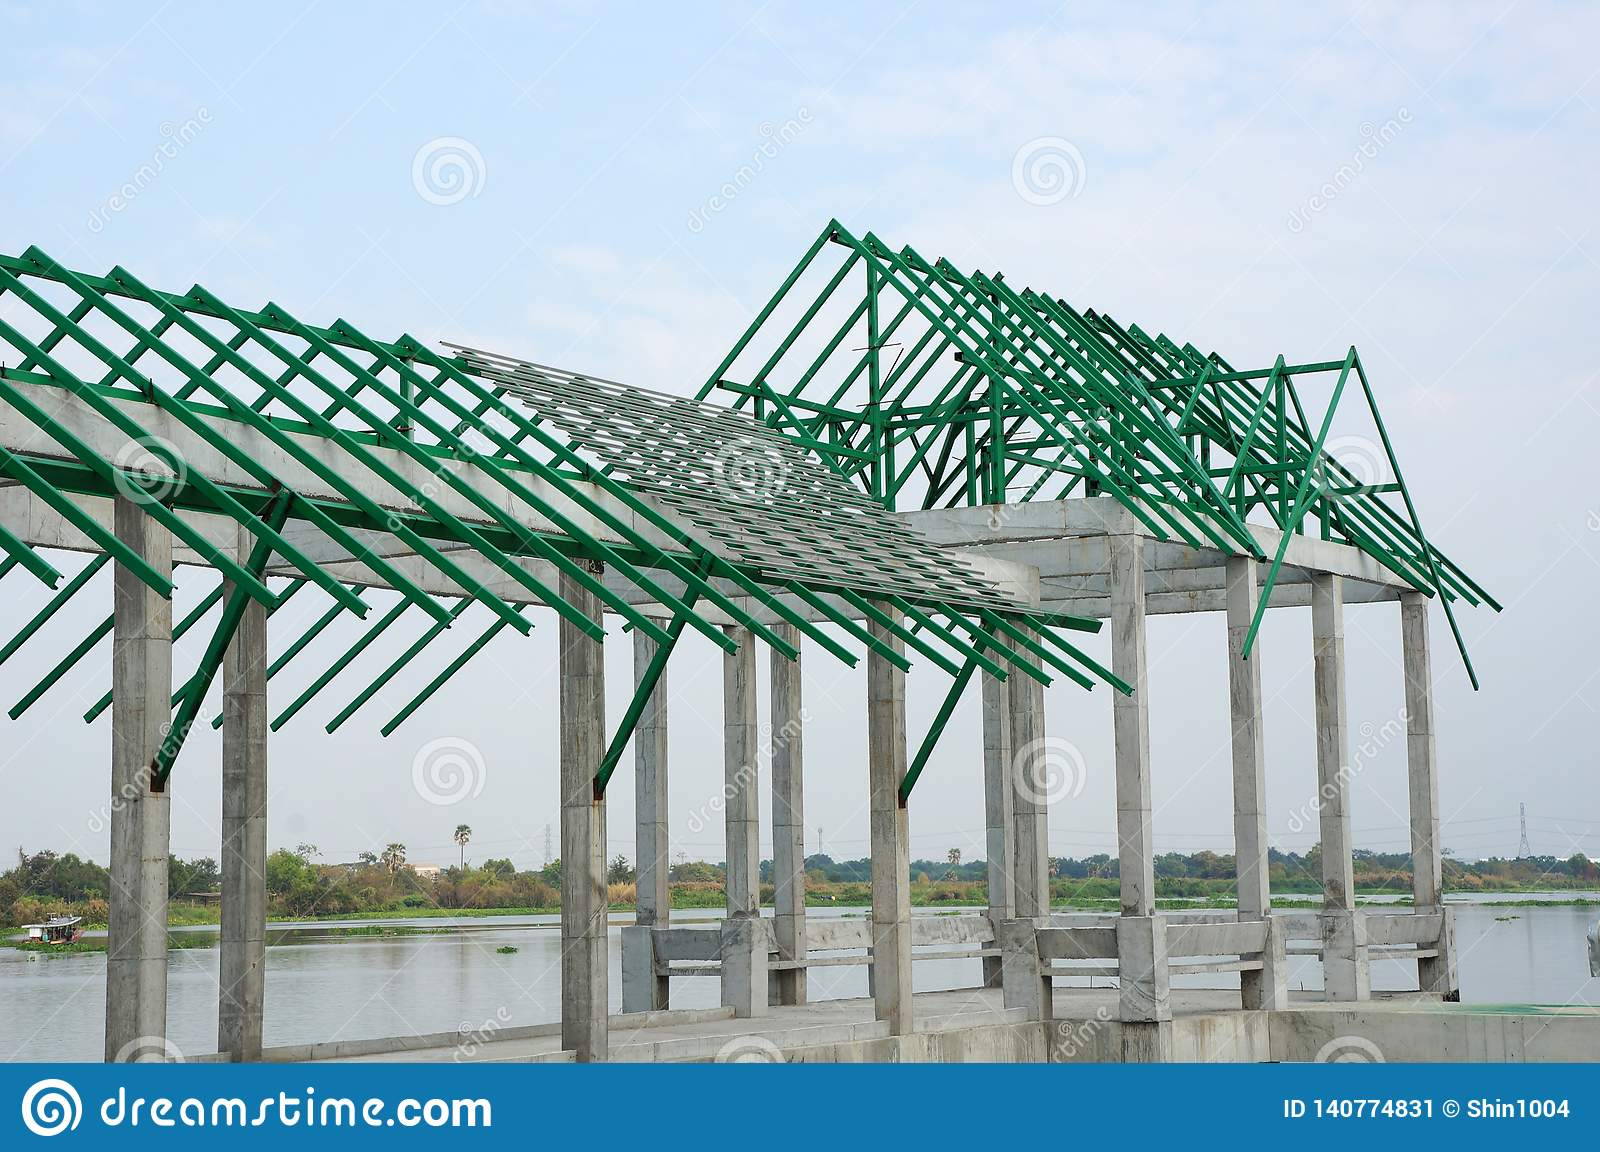 A New Build Roof With A Metal Truss Framework Color Green Stock Image Image Of Design Architecture 140774831